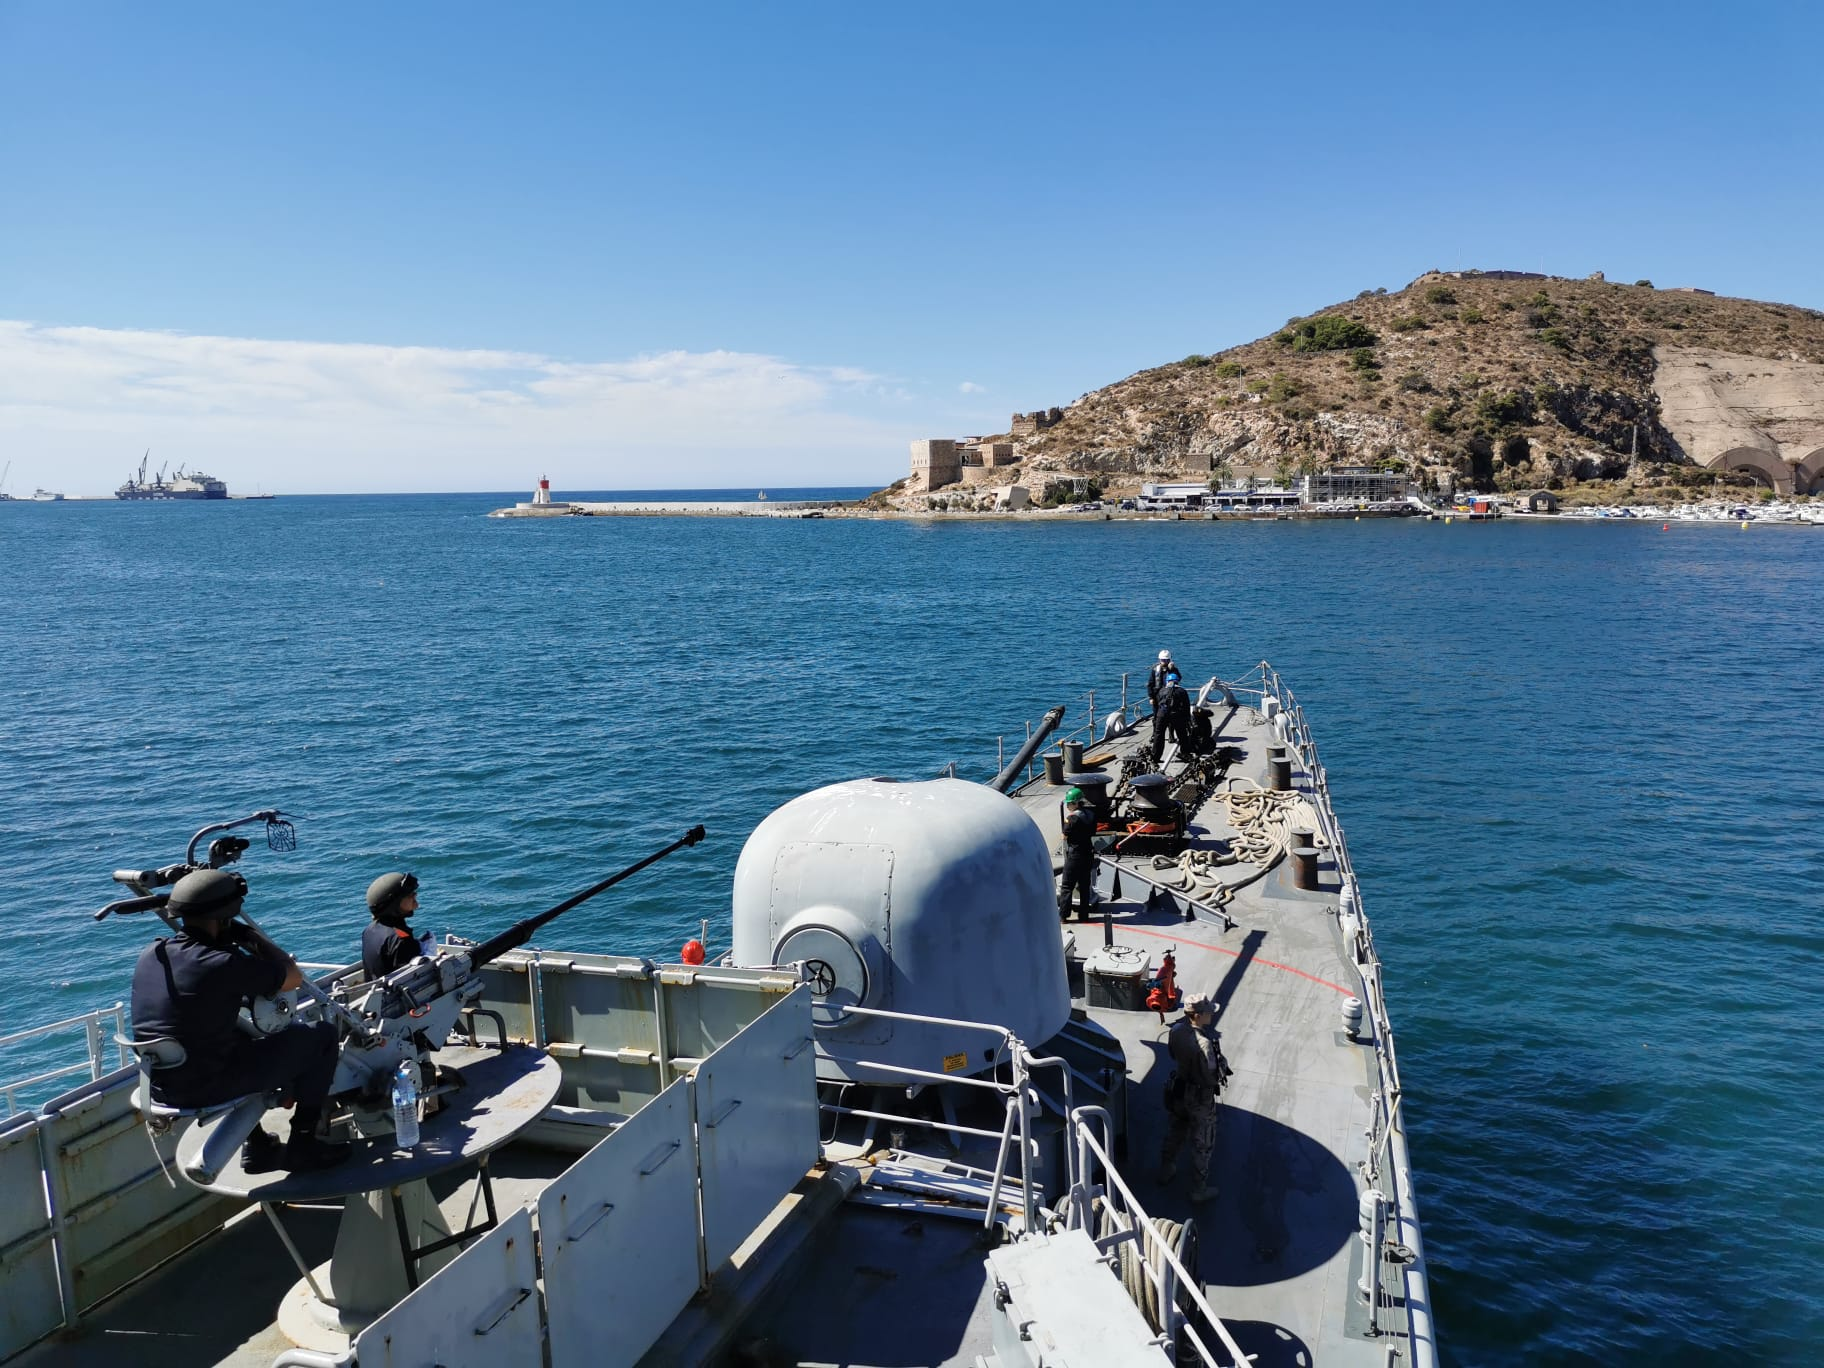 Patrol vessel 'Infanta Elena' carries out surveillance routines on Spanish sovereign waters